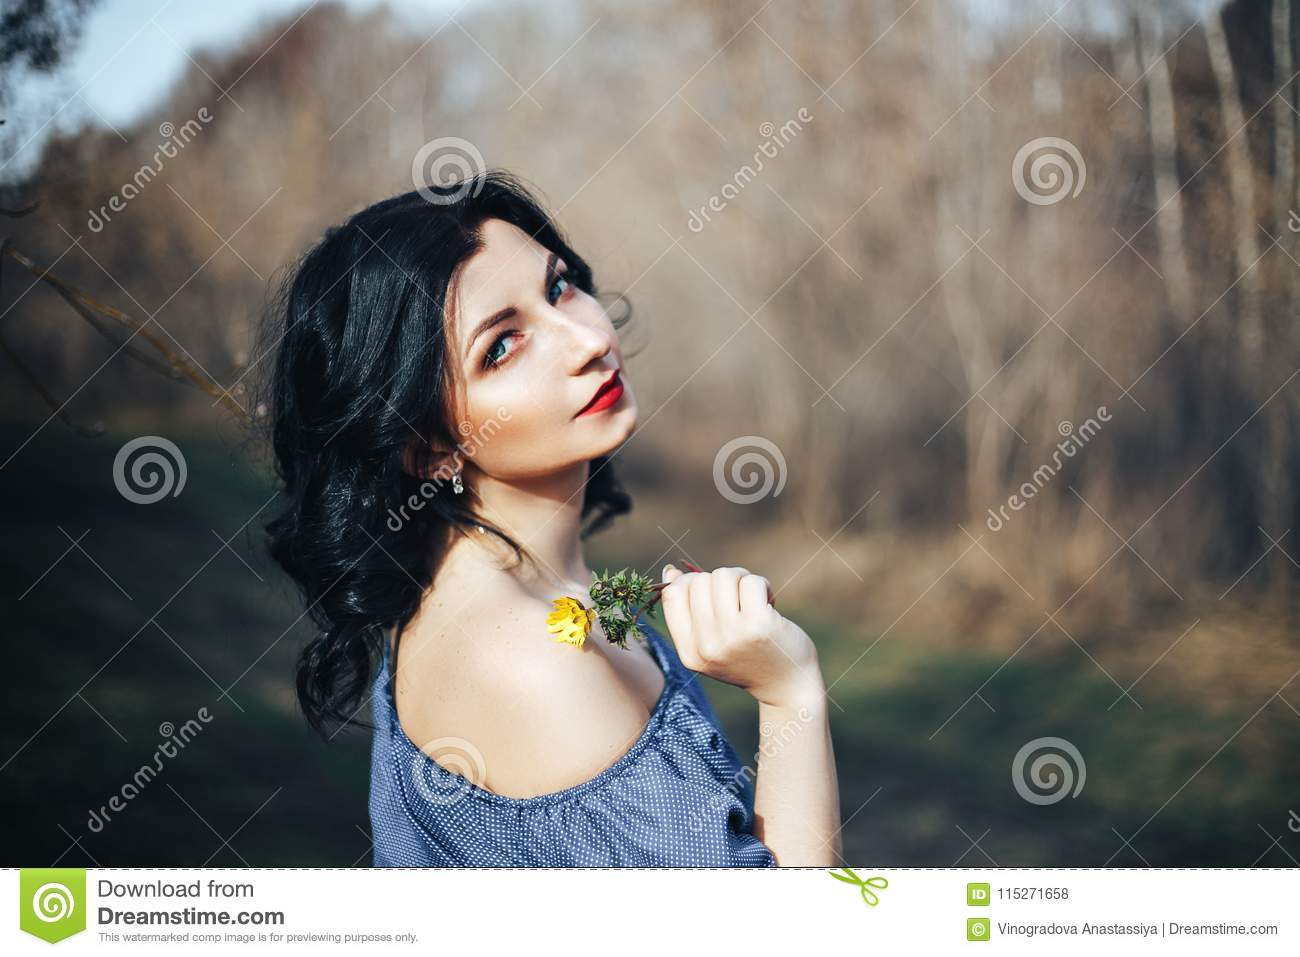 Beautiful girl in blue dress standing near spring garden against a  background of green grass and gray trees e98cc965b